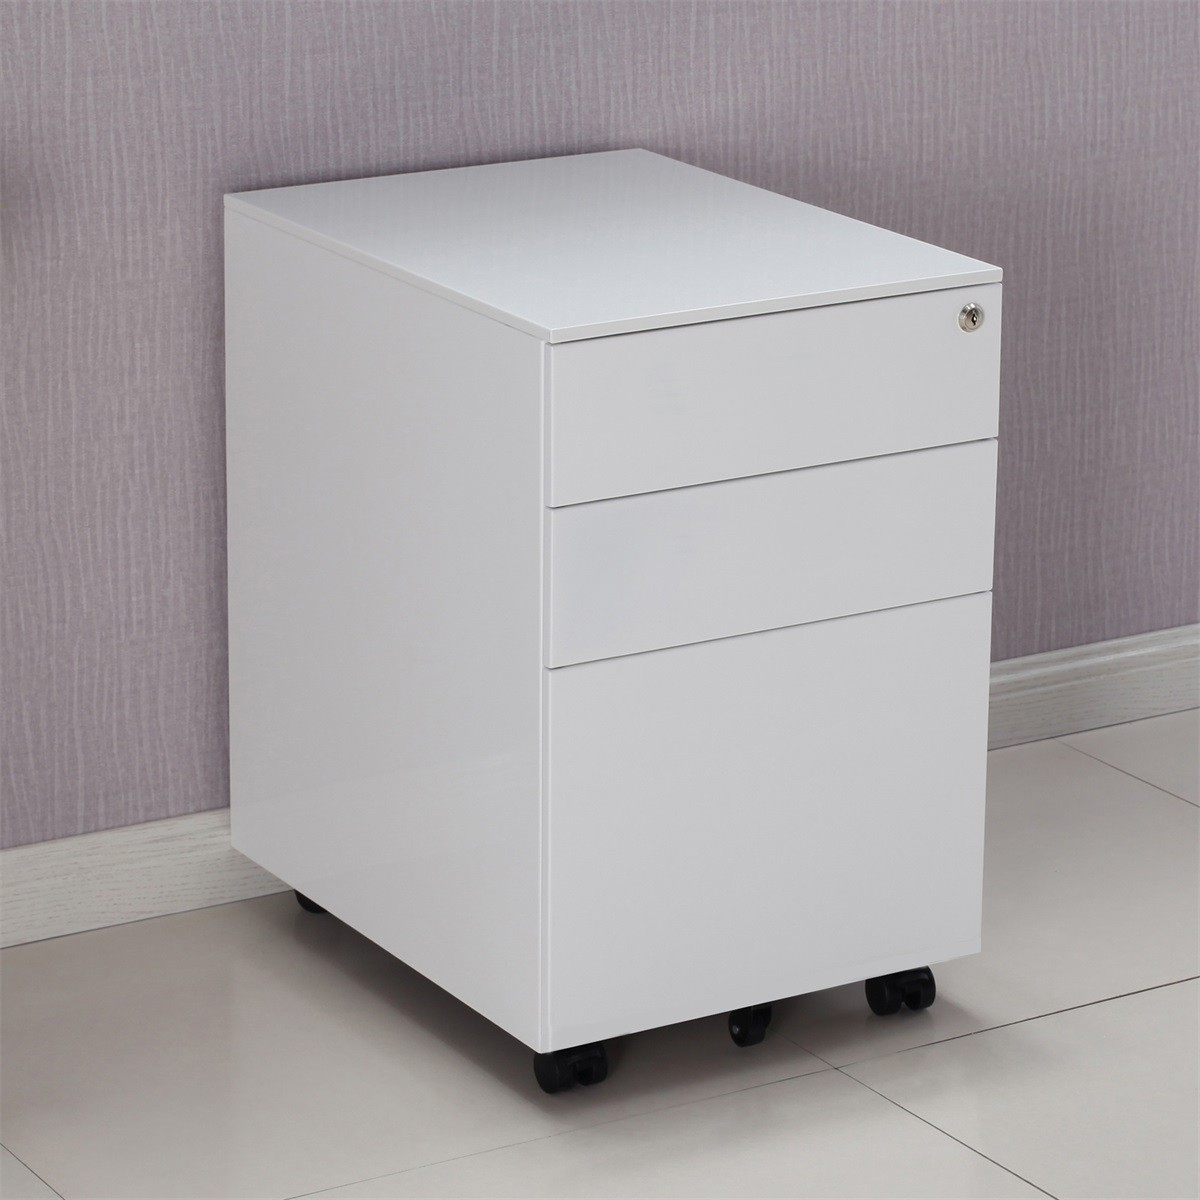 ModernLuxe Movable 3 Drawers Lockable Metal File Cabinet ...